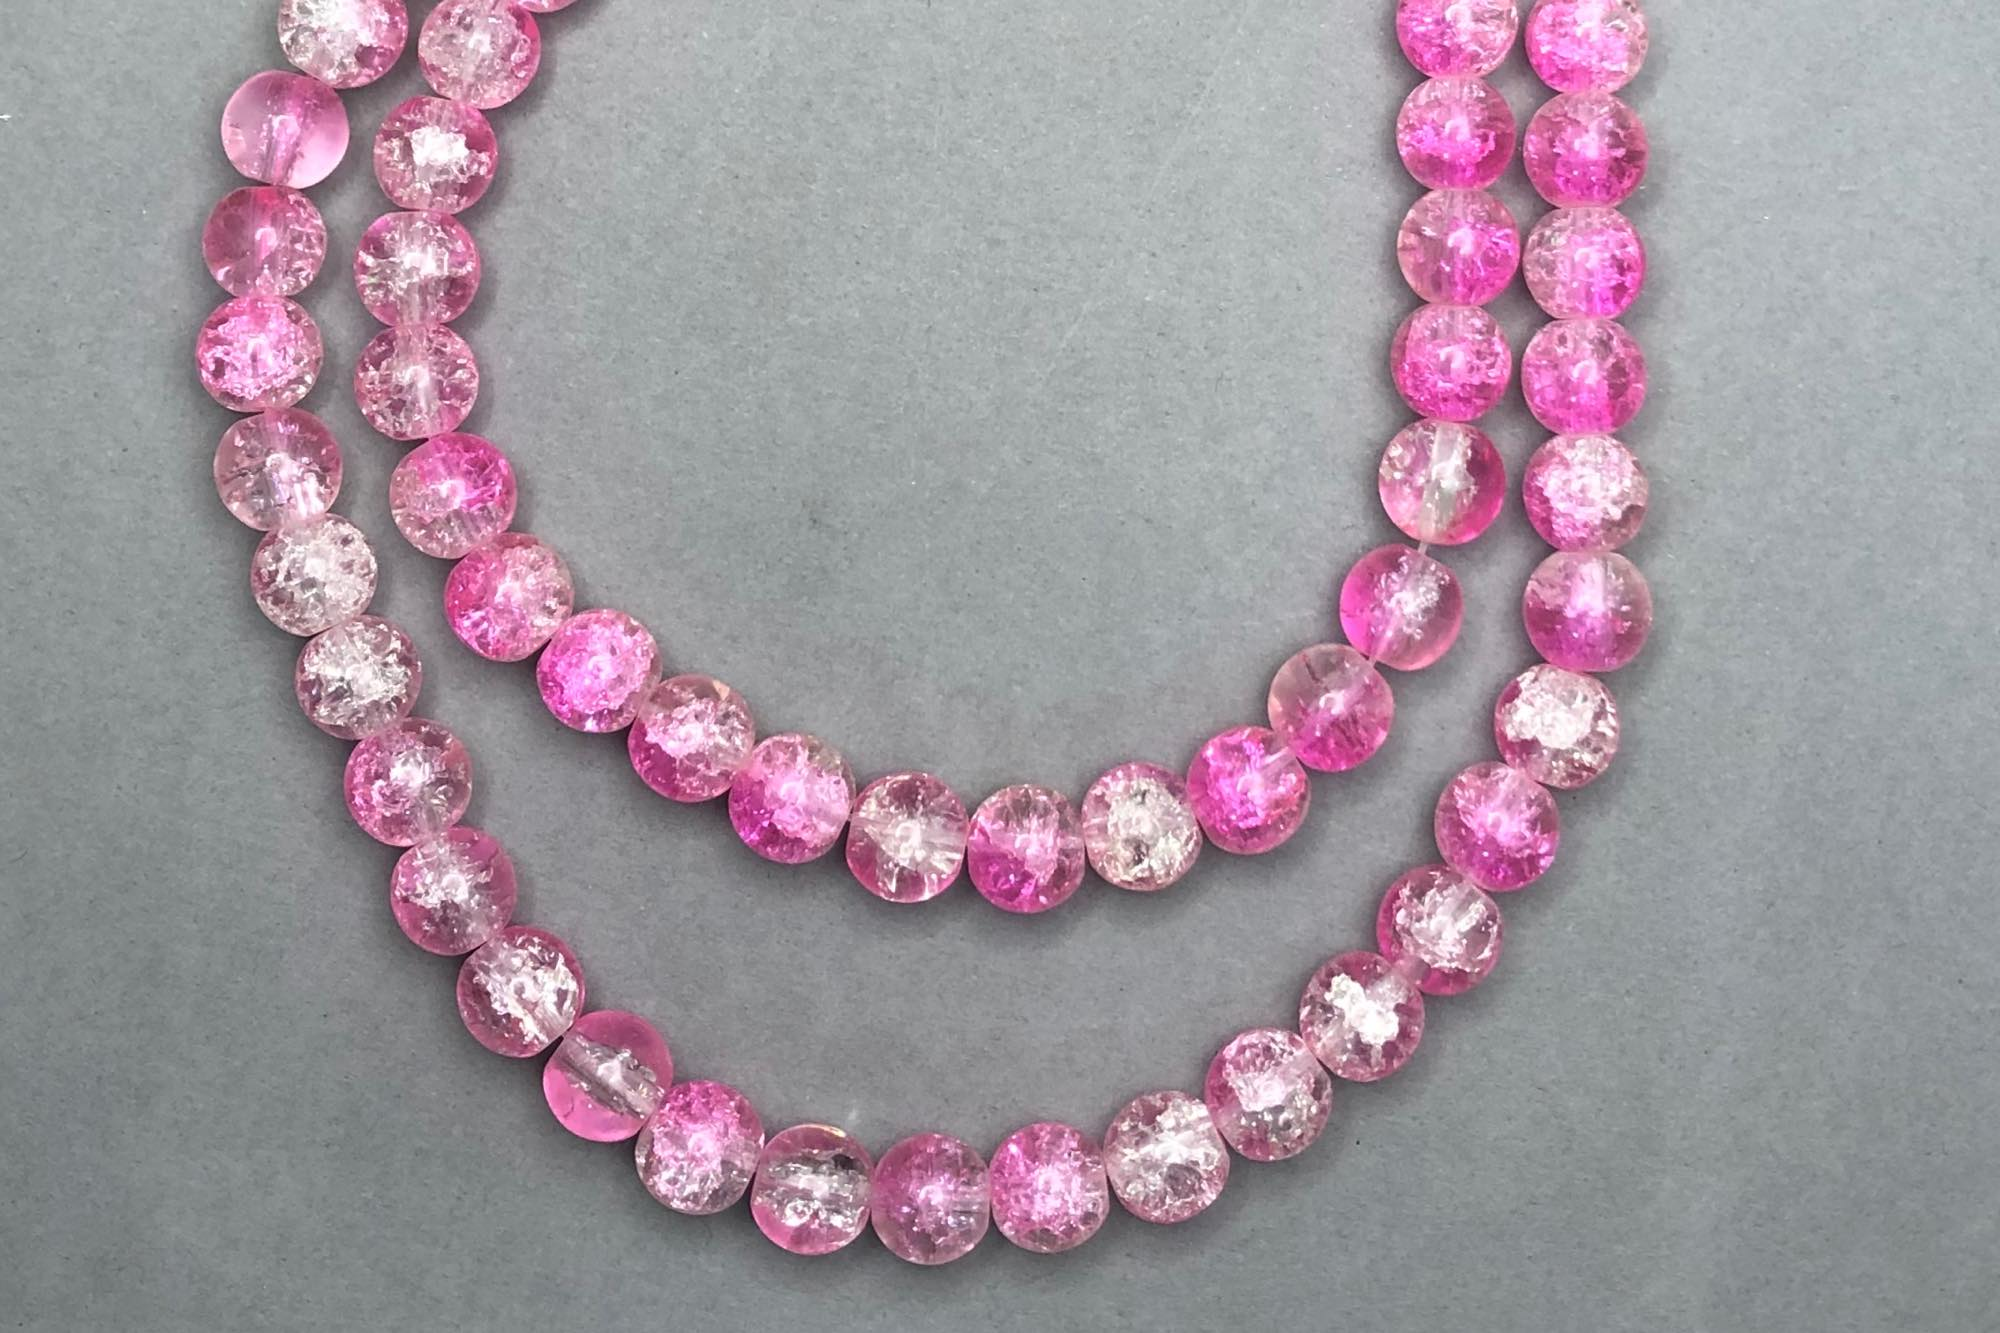 Pink/Clear Crackle Glass Beads